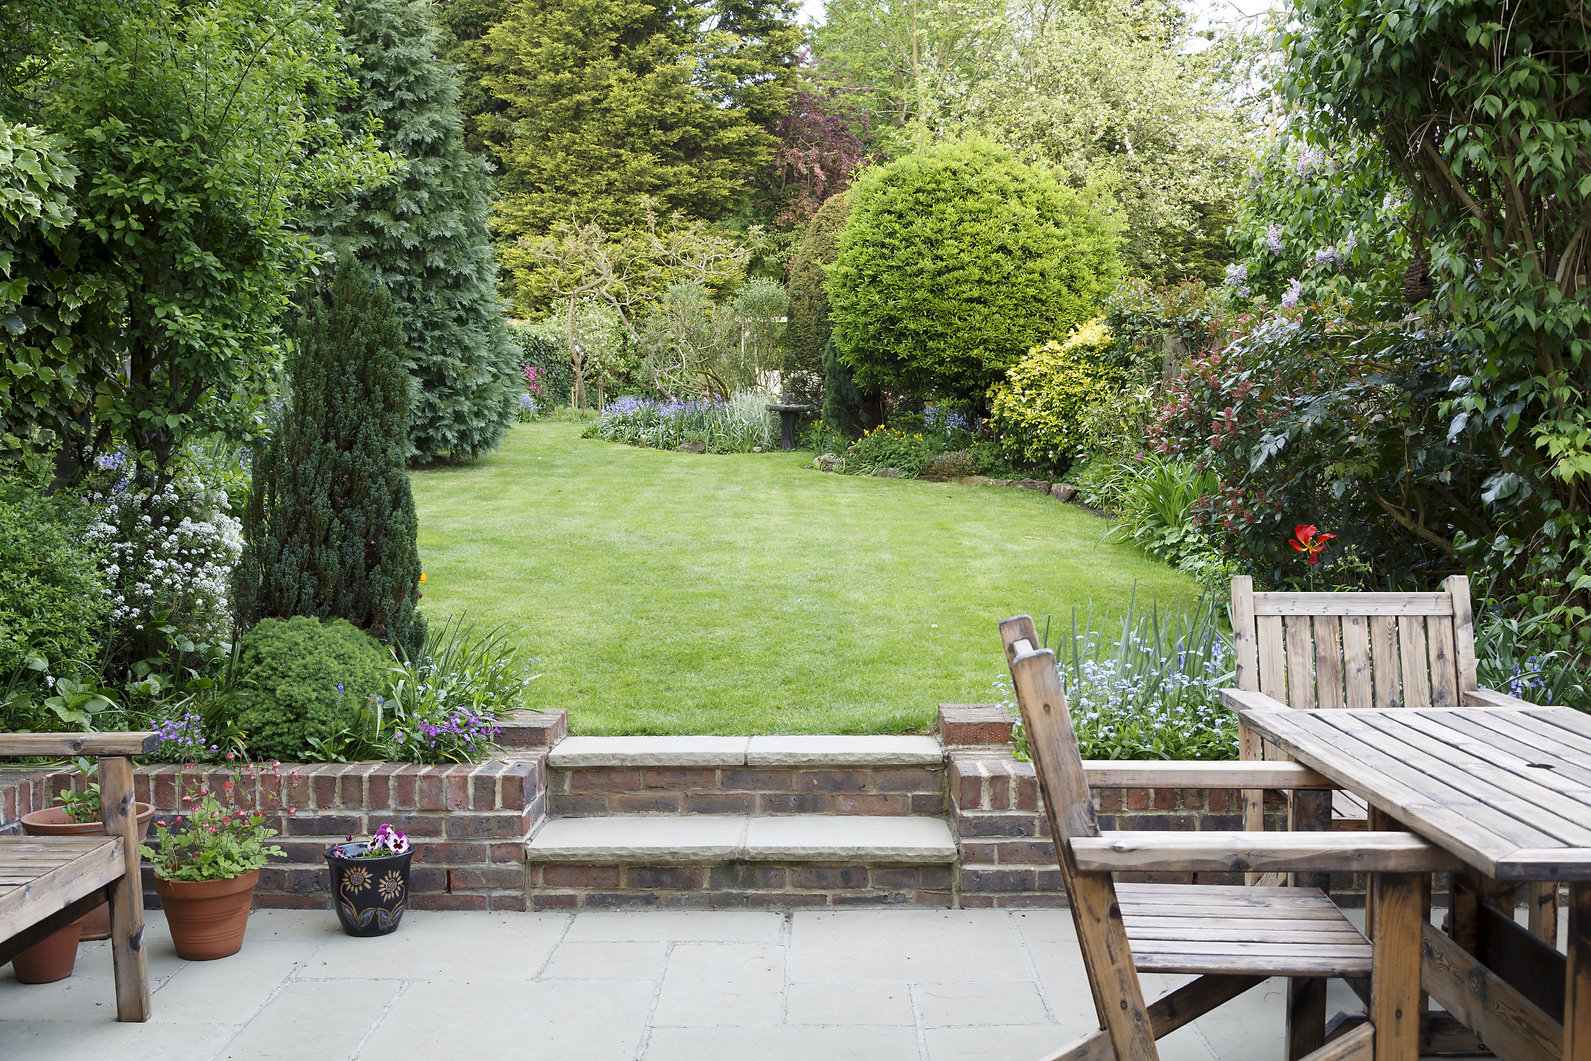 Garden patio with furniture and lawn in